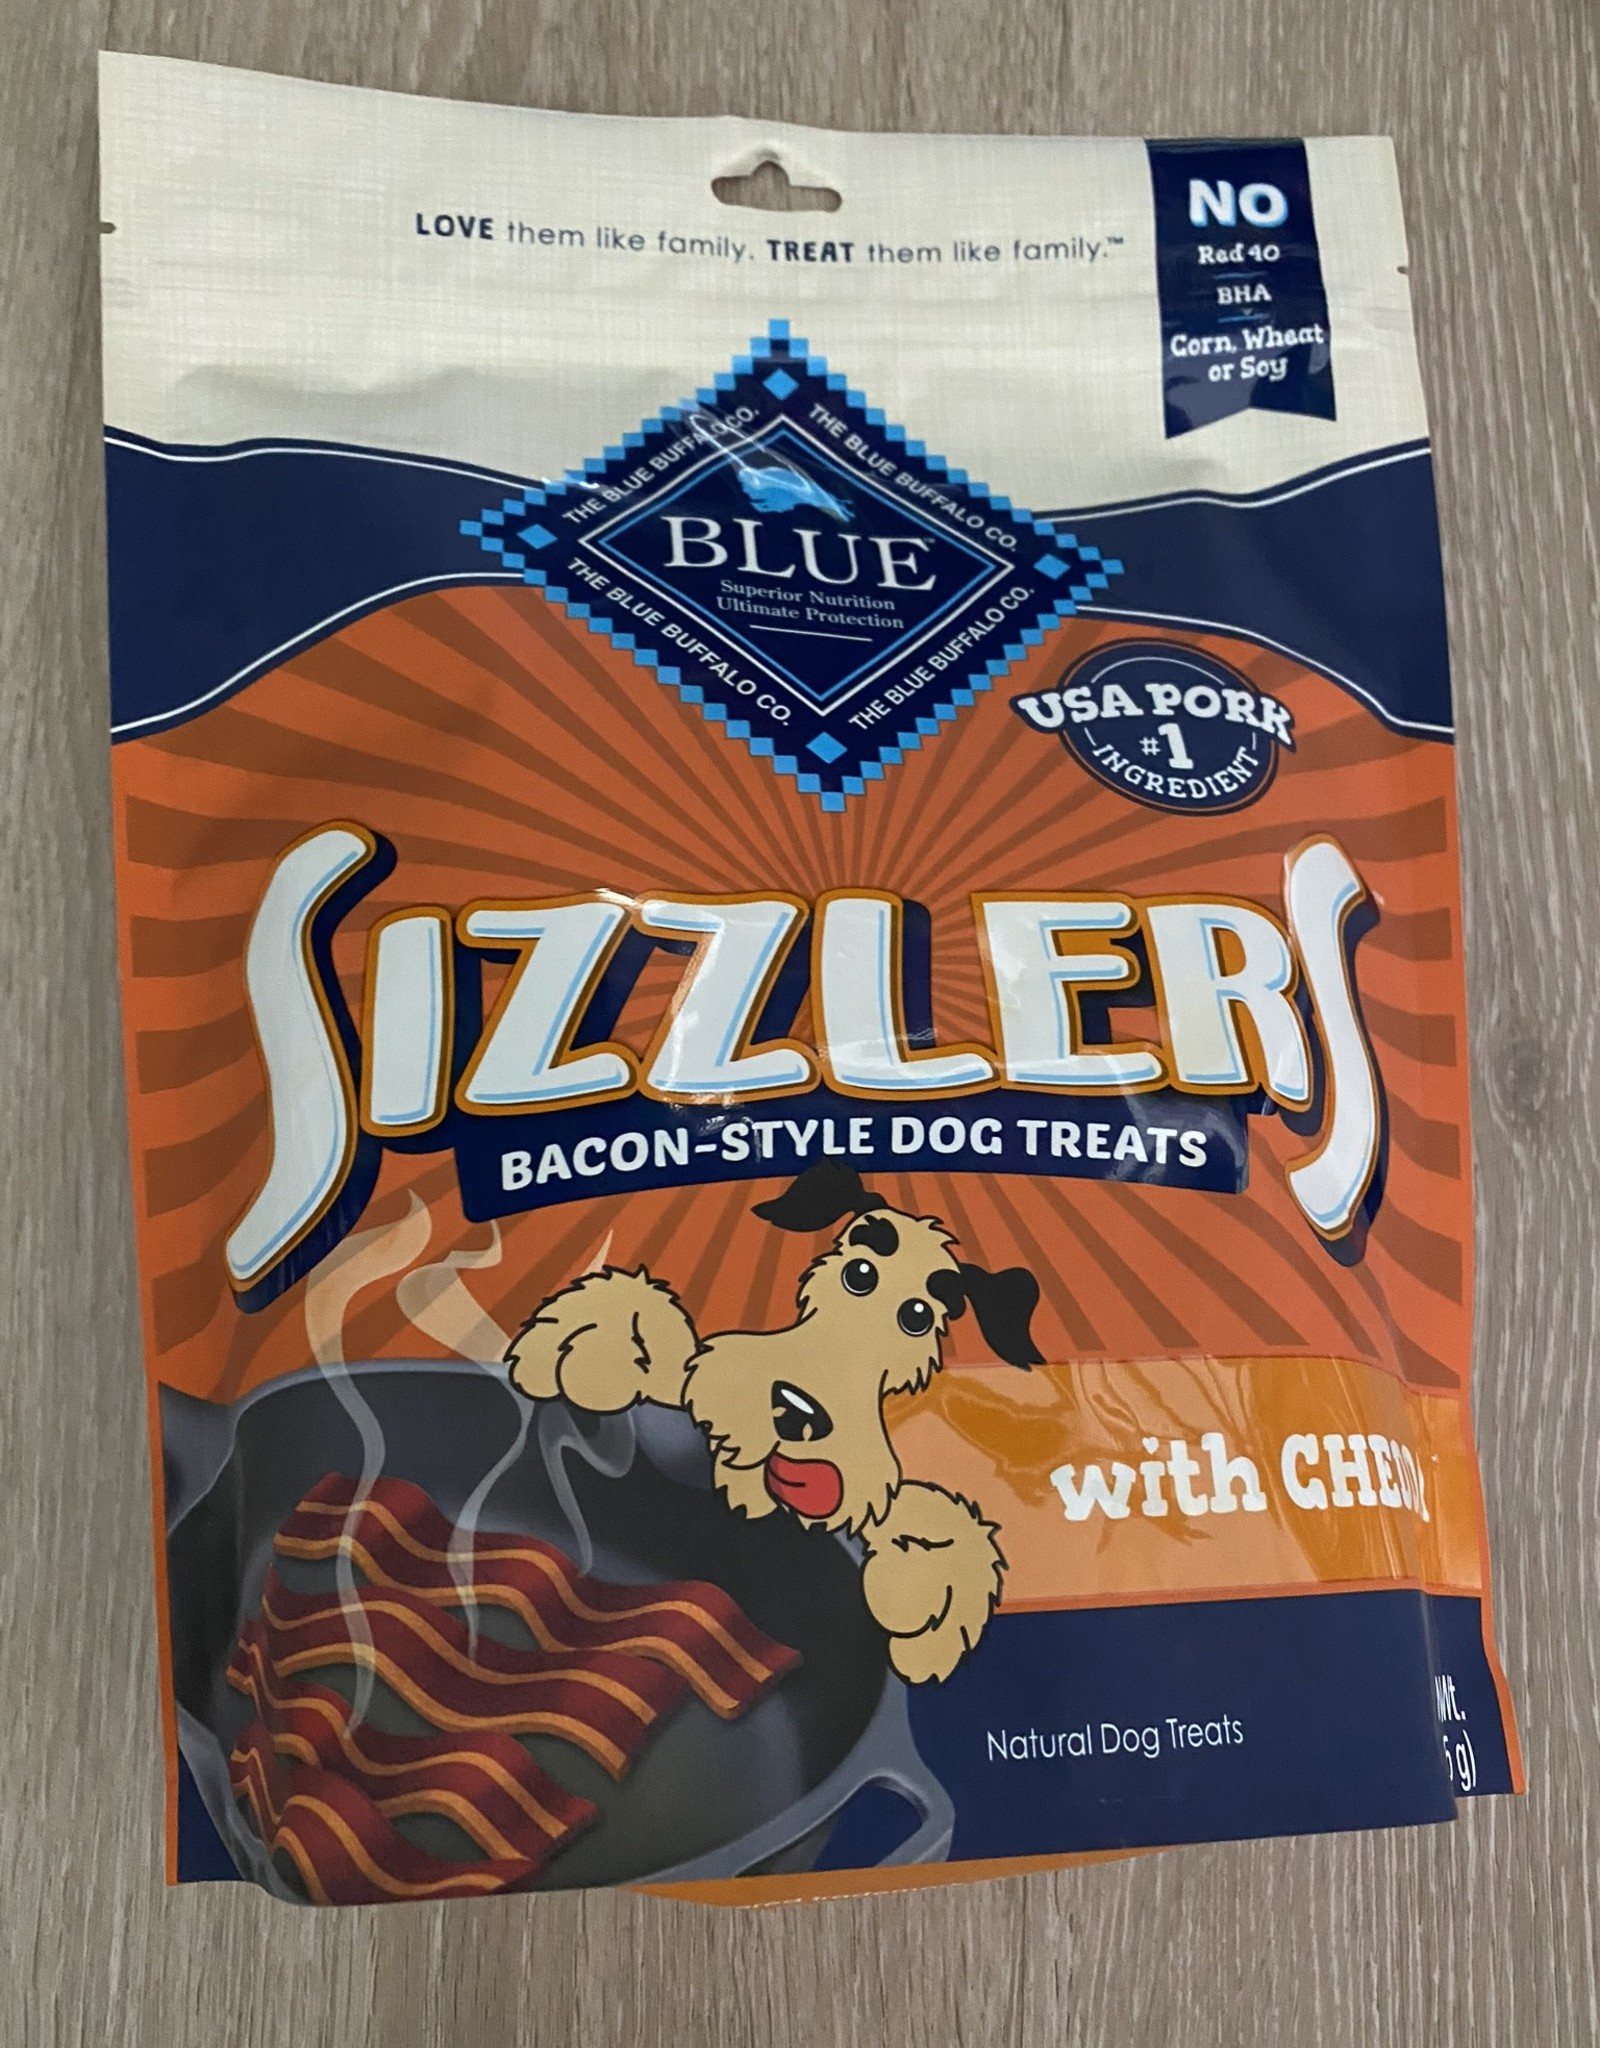 Blue Buffalo Sizzlers Treats - Cheddar 15oz